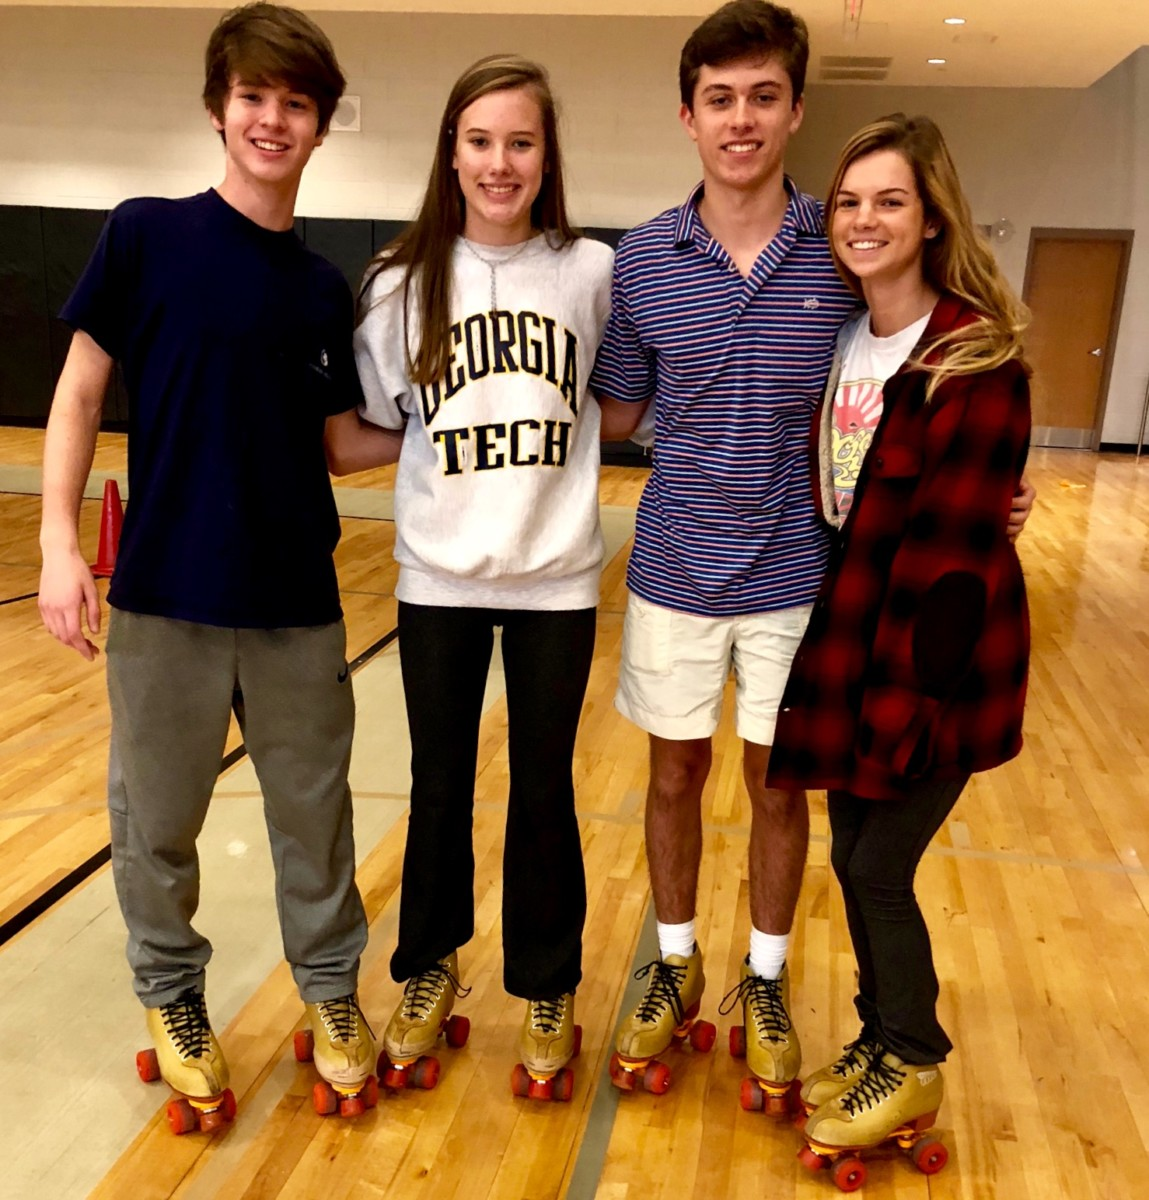 Hot on Wheels: Freshman Bryce McGowan, and Sophomores Lily Jones and Tyler Hankin roll their way through the P.E. roller skating curriculum.